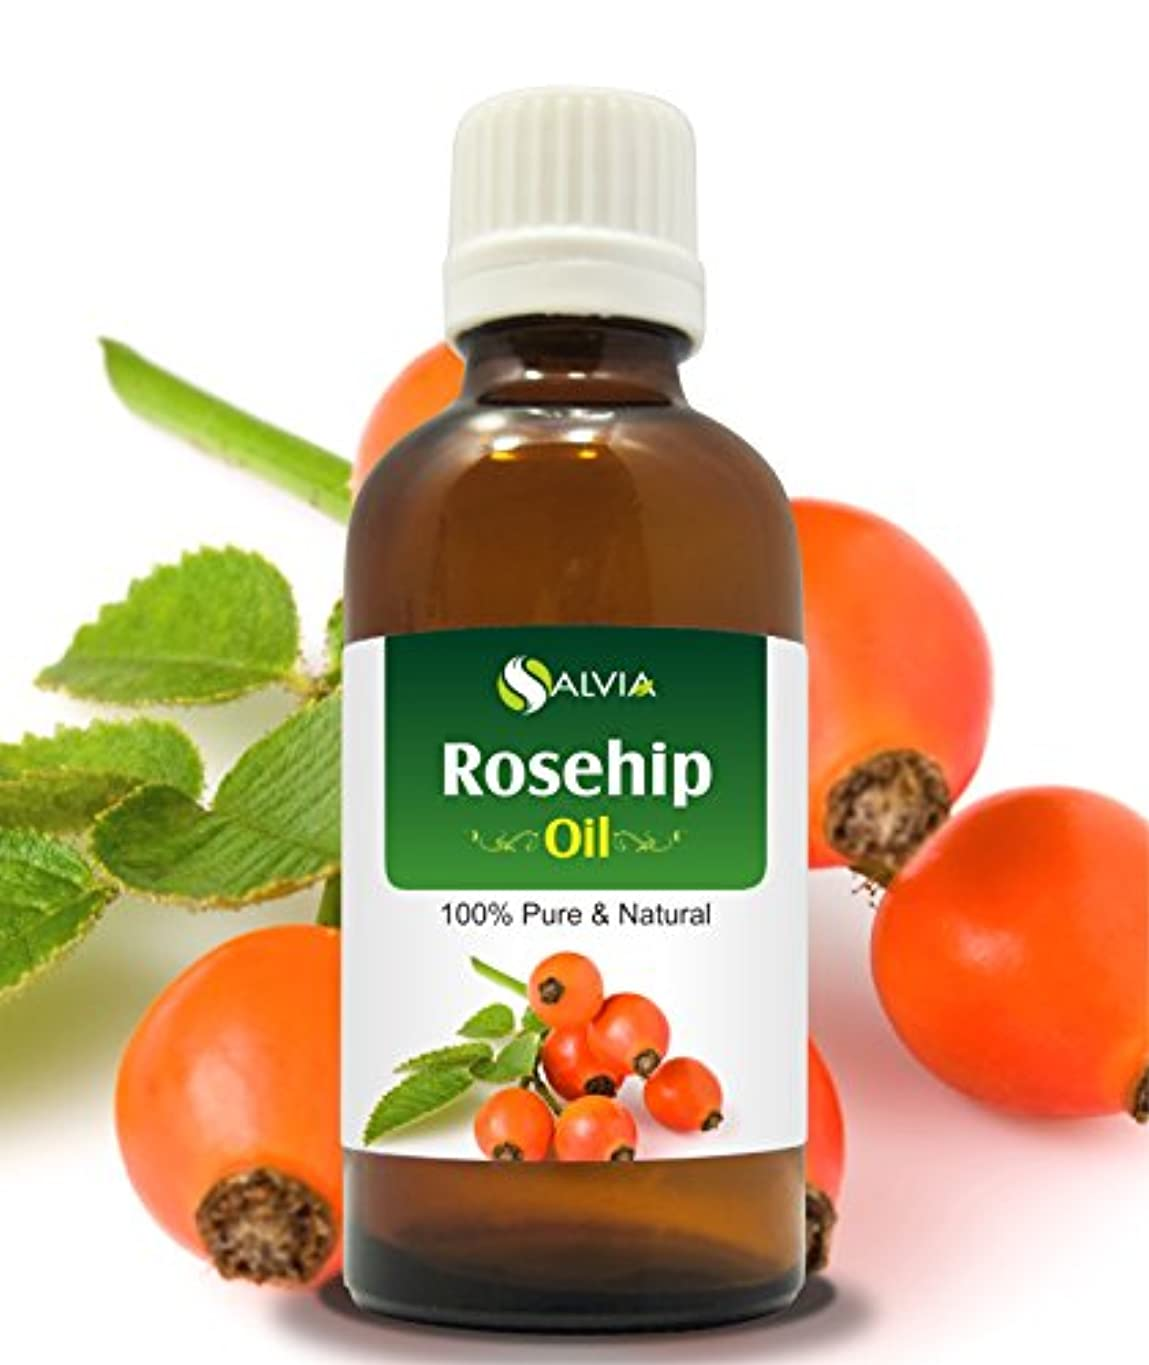 労働者制限されたスパイラルROSEHIP OIL 100% NATURAL PURE UNDILUTED UNCUT CARRIER OIL 15ML